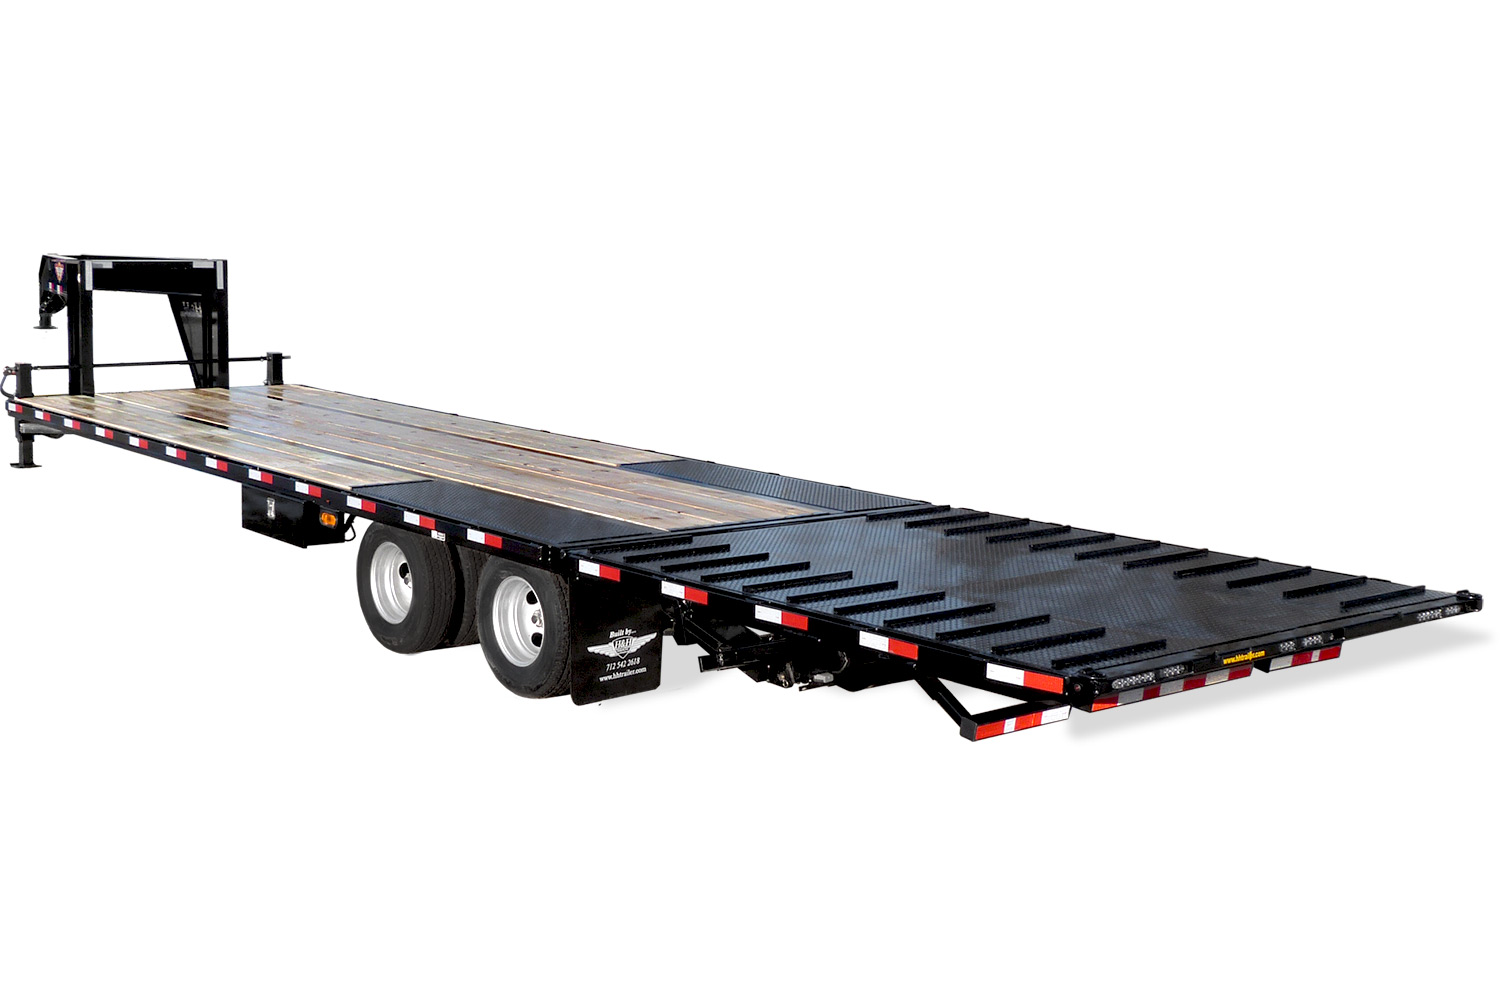 2020 H and H Trailer 25FT 19LB 20K GNLP STRAIGHT DECKOVER